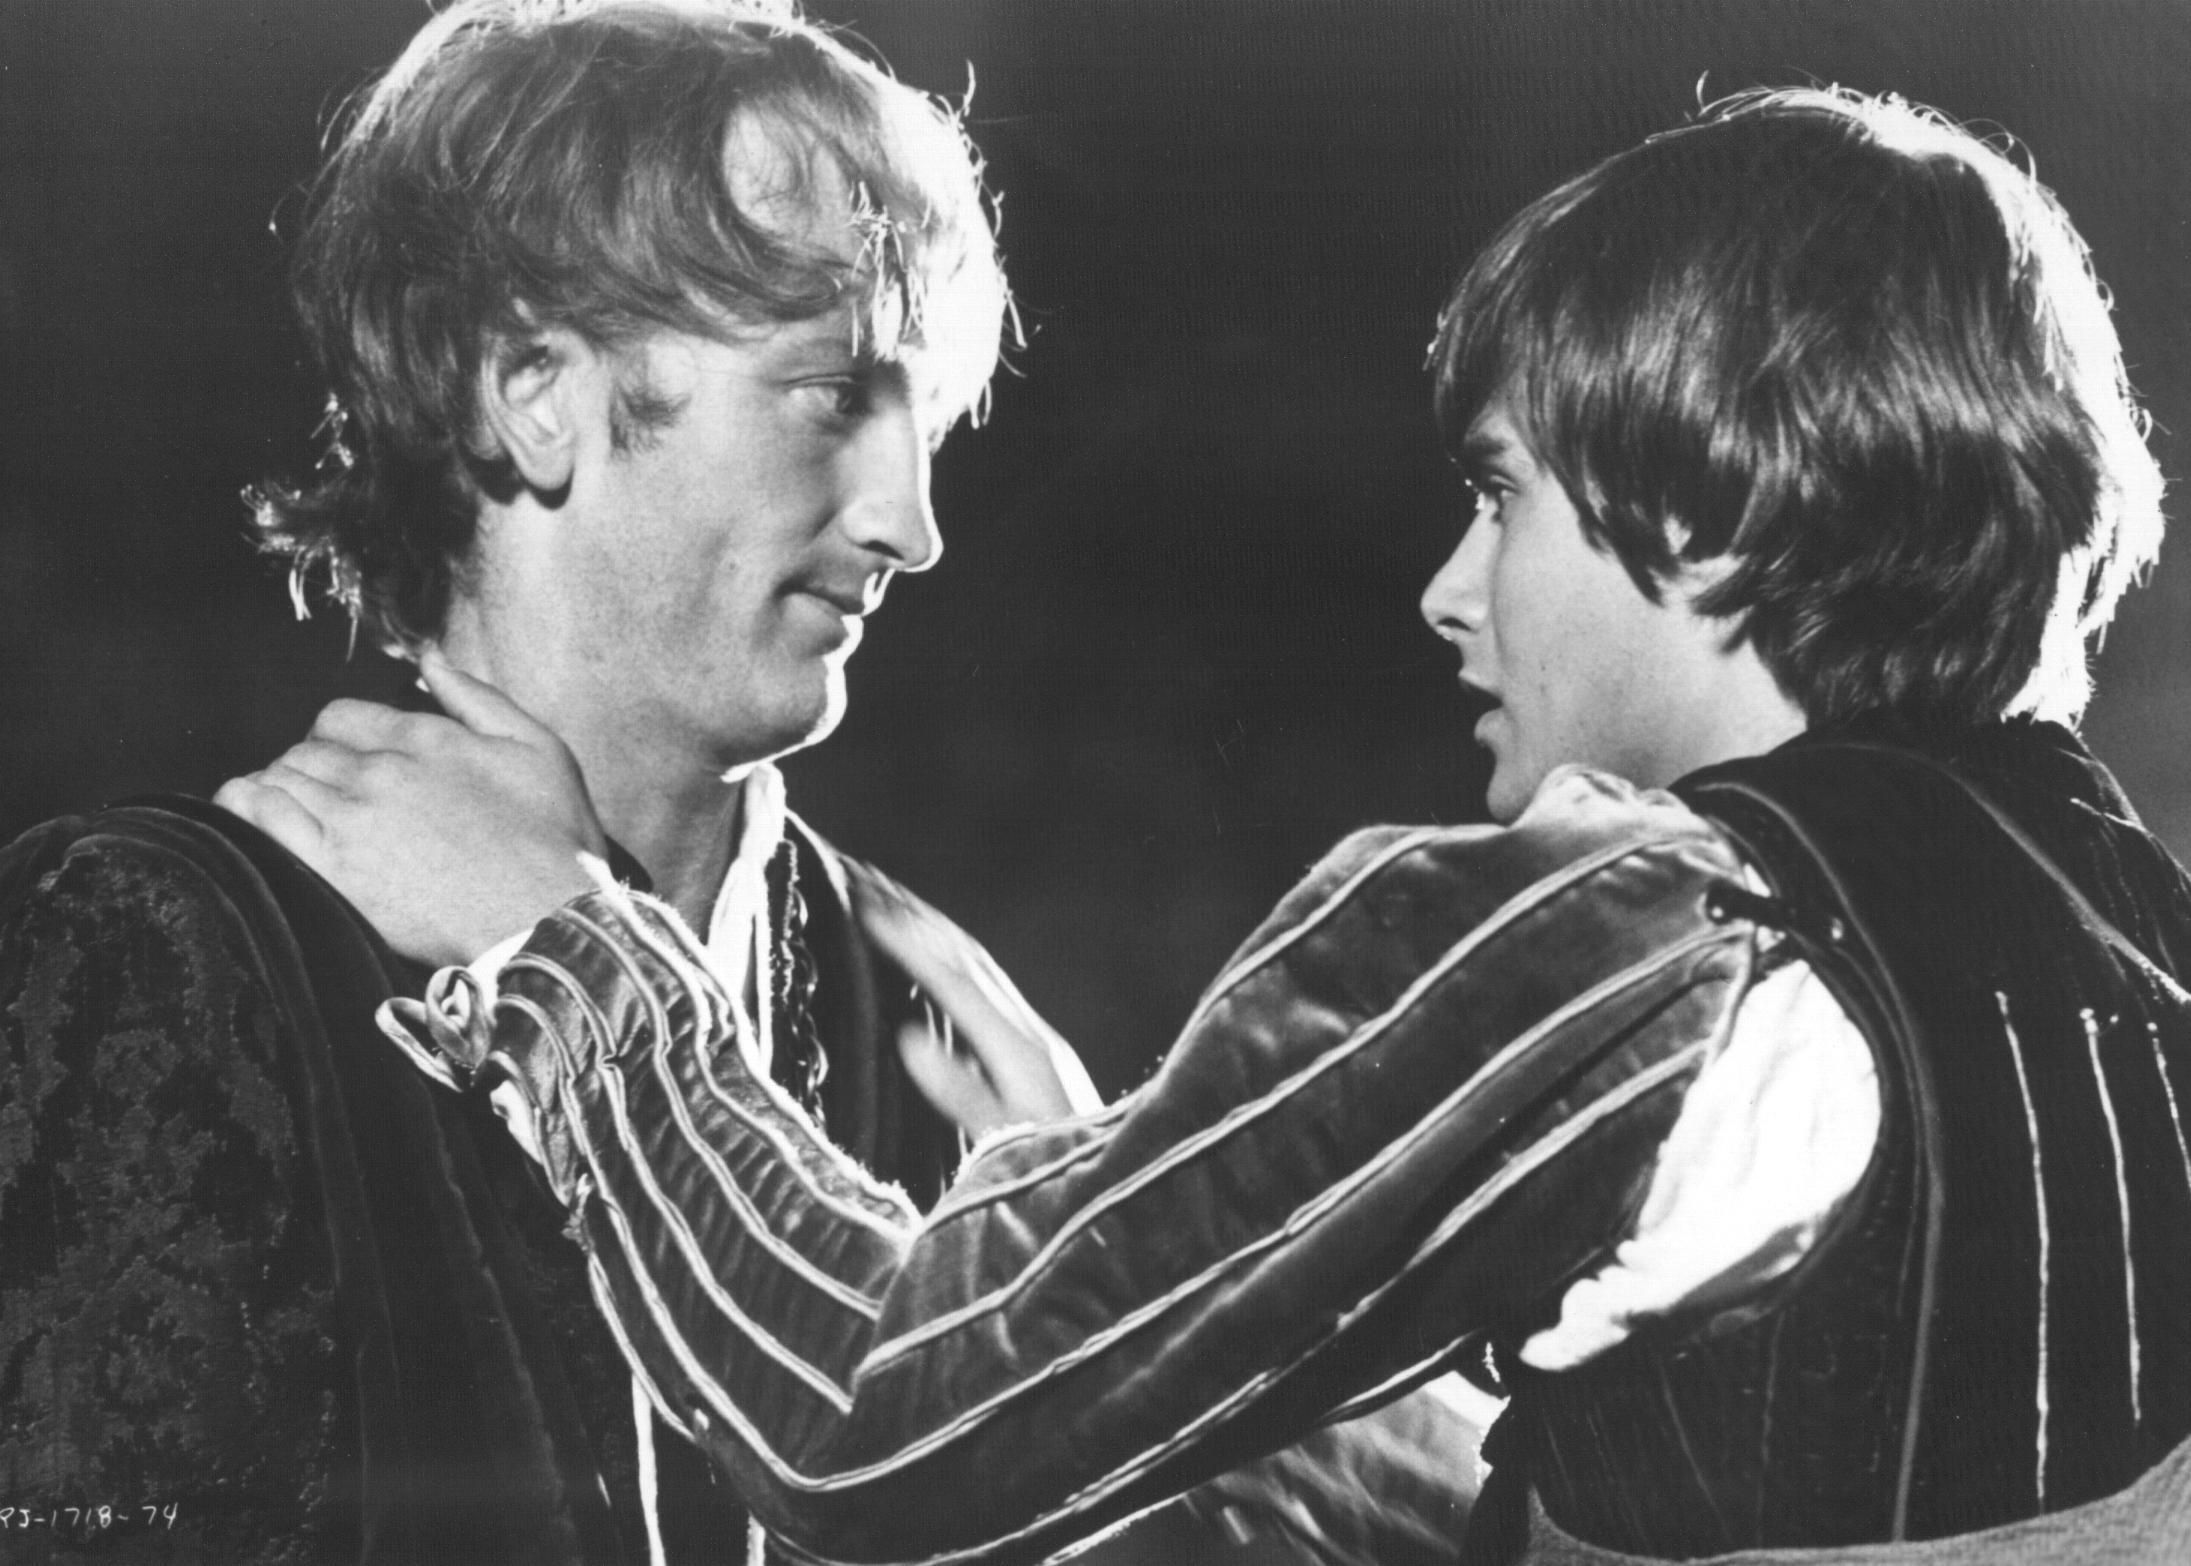 Compare the effectiveness of the Romeo and Juliet street fight scene in the movies...Zeffirelli(1968) and Luhrmann(1996)?